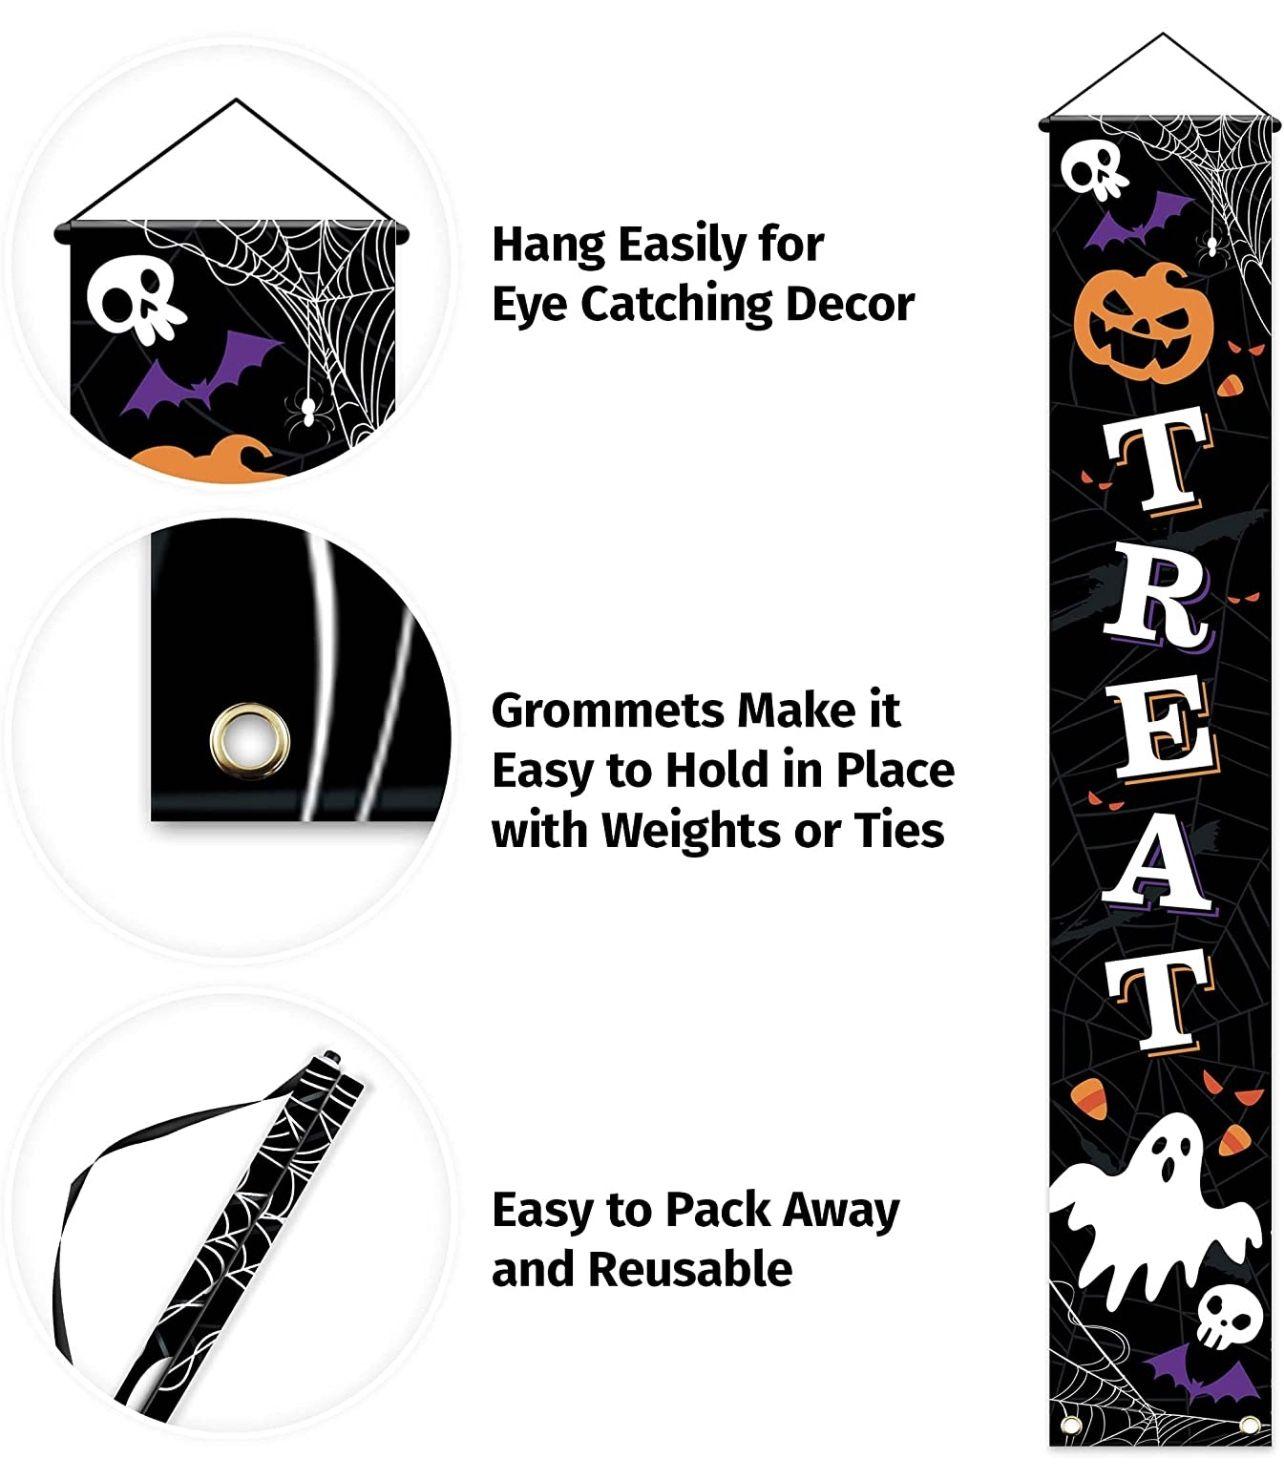 Outdoor Halloween Decorations Decor - Front Door Trick or Treat Banner Hanging Halloween Porch Decorations Outdoor Clearance Signs for Home Welcome Si